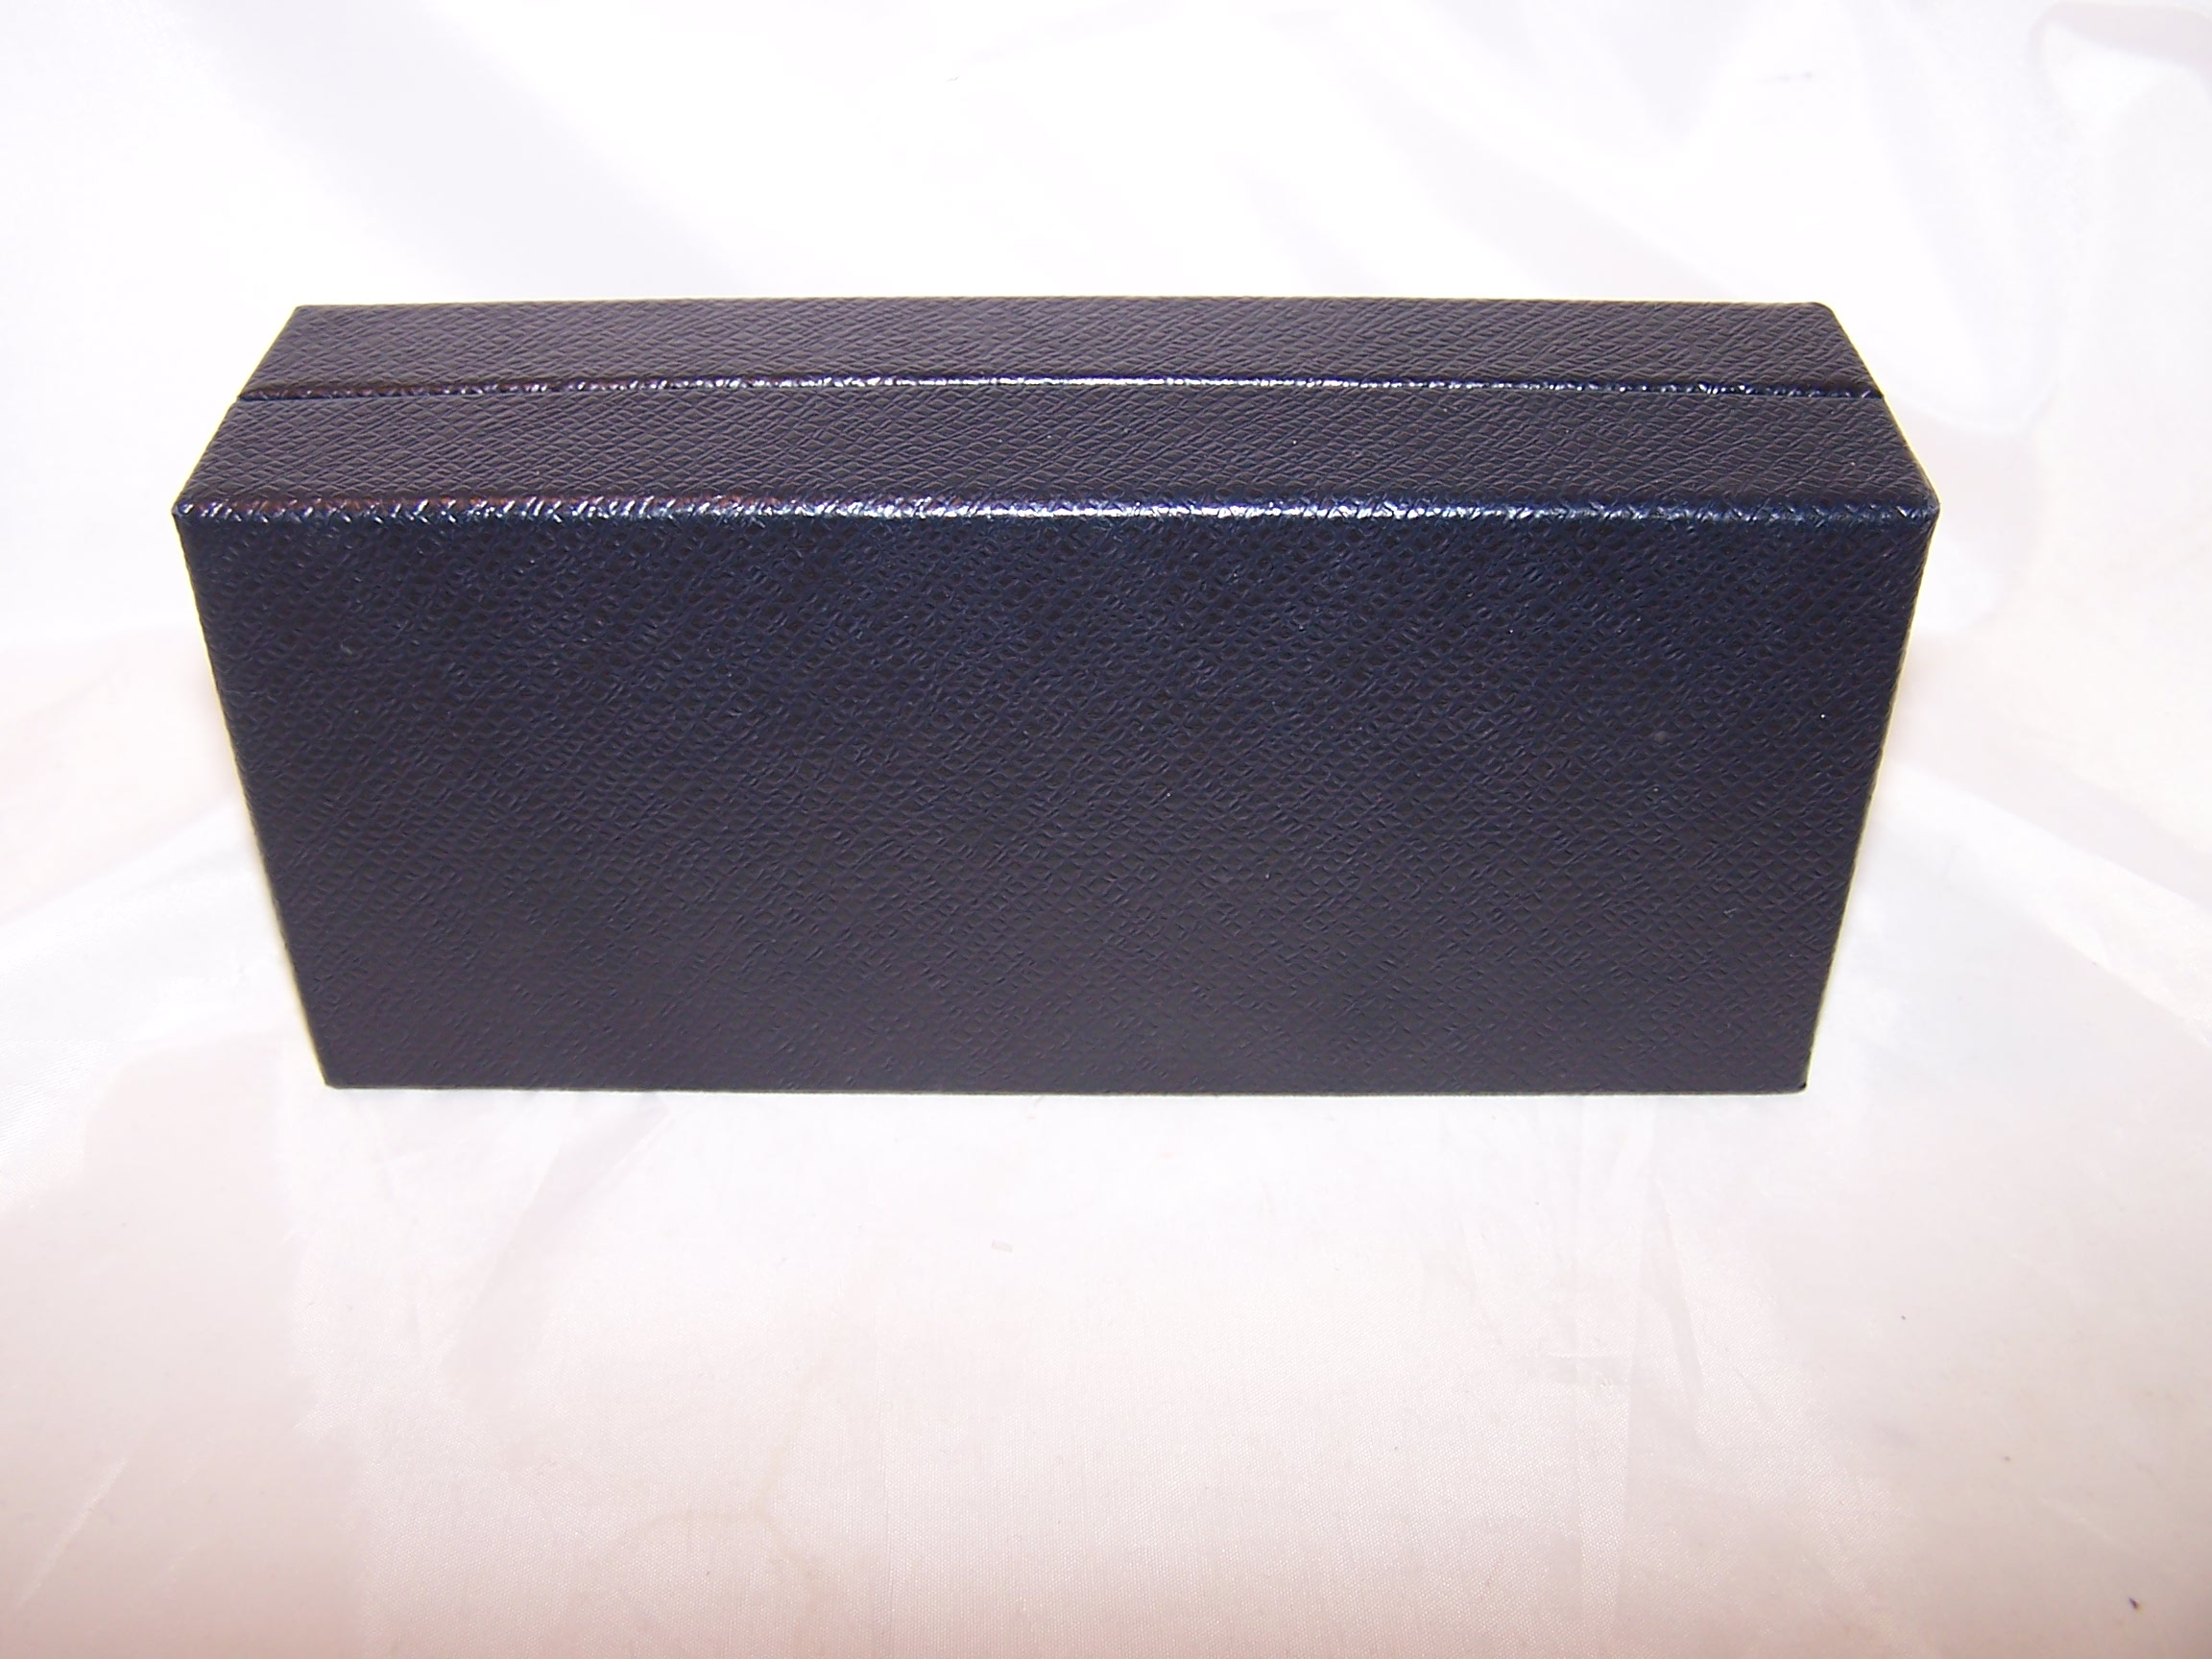 Image 6 of Prada Box, Black w Silver, Rectangular